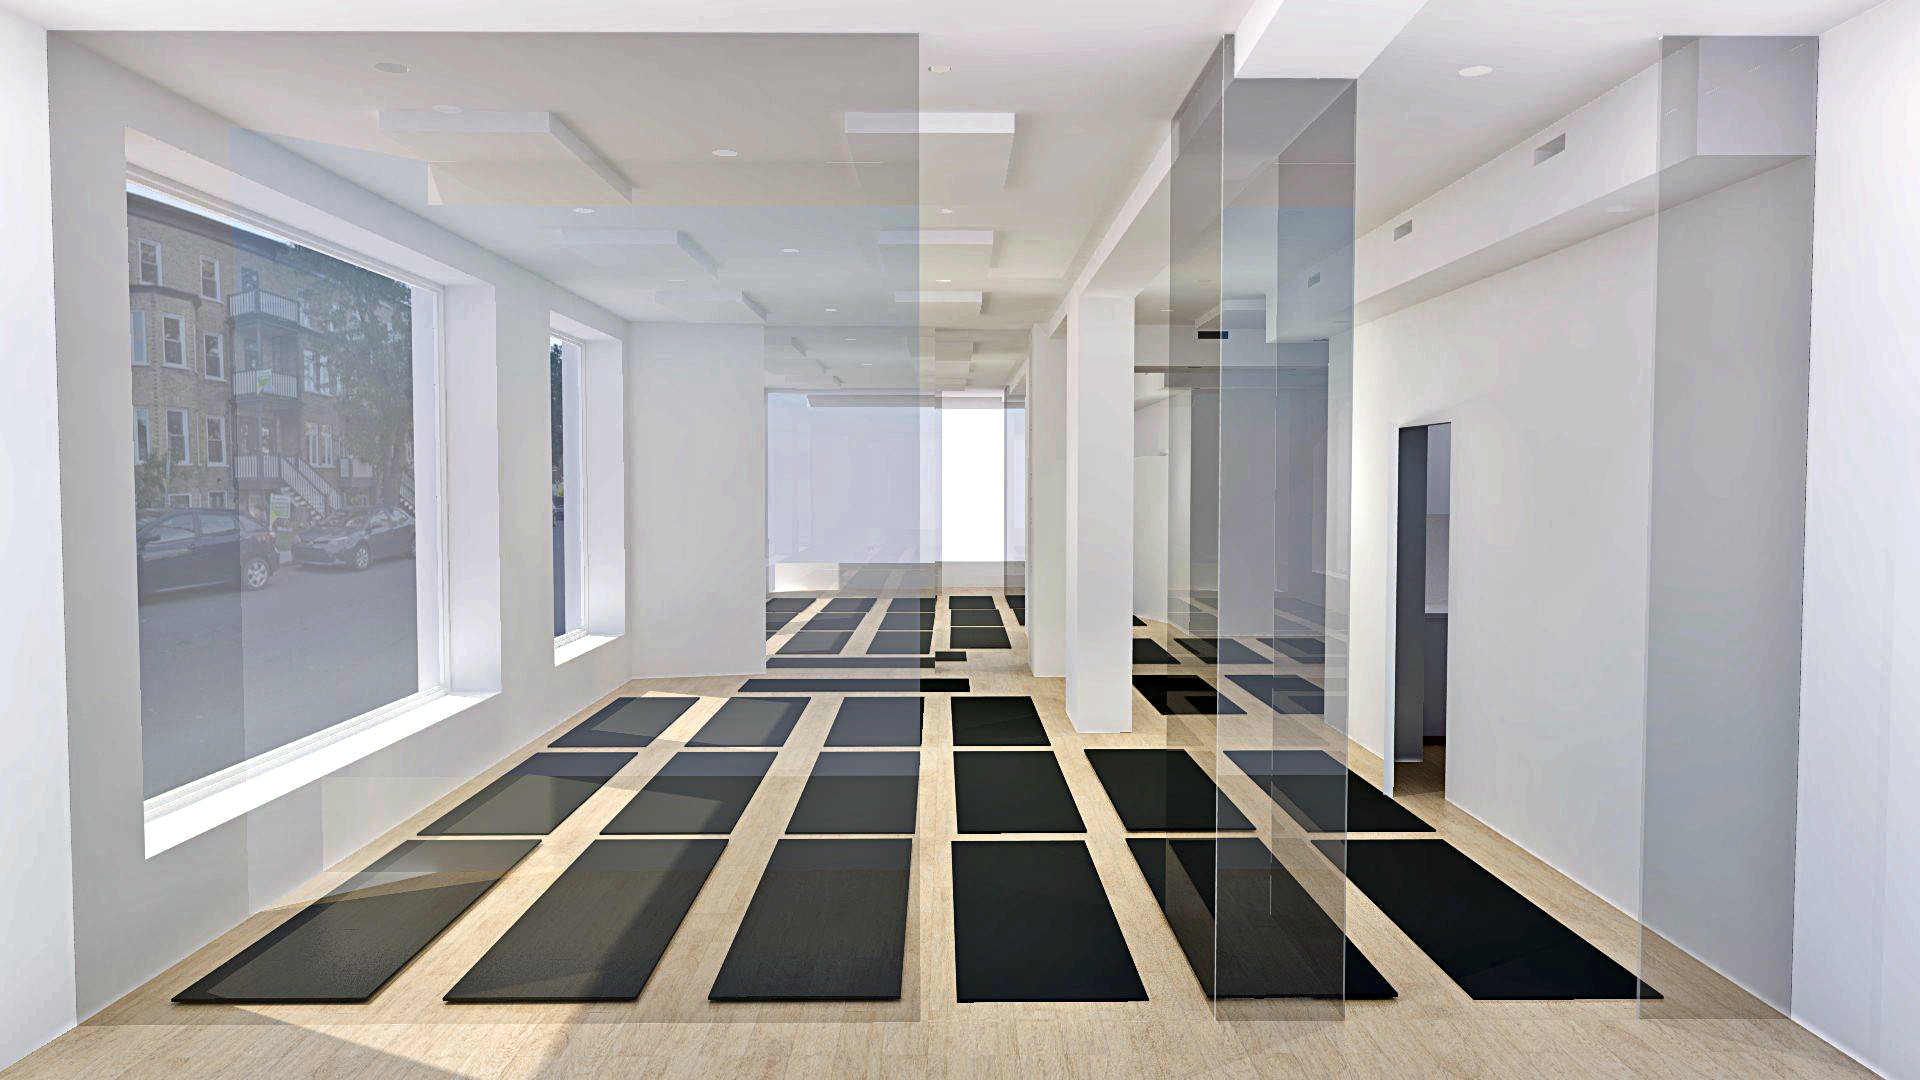 The main hot flow yoga studio with mirrors on back wall